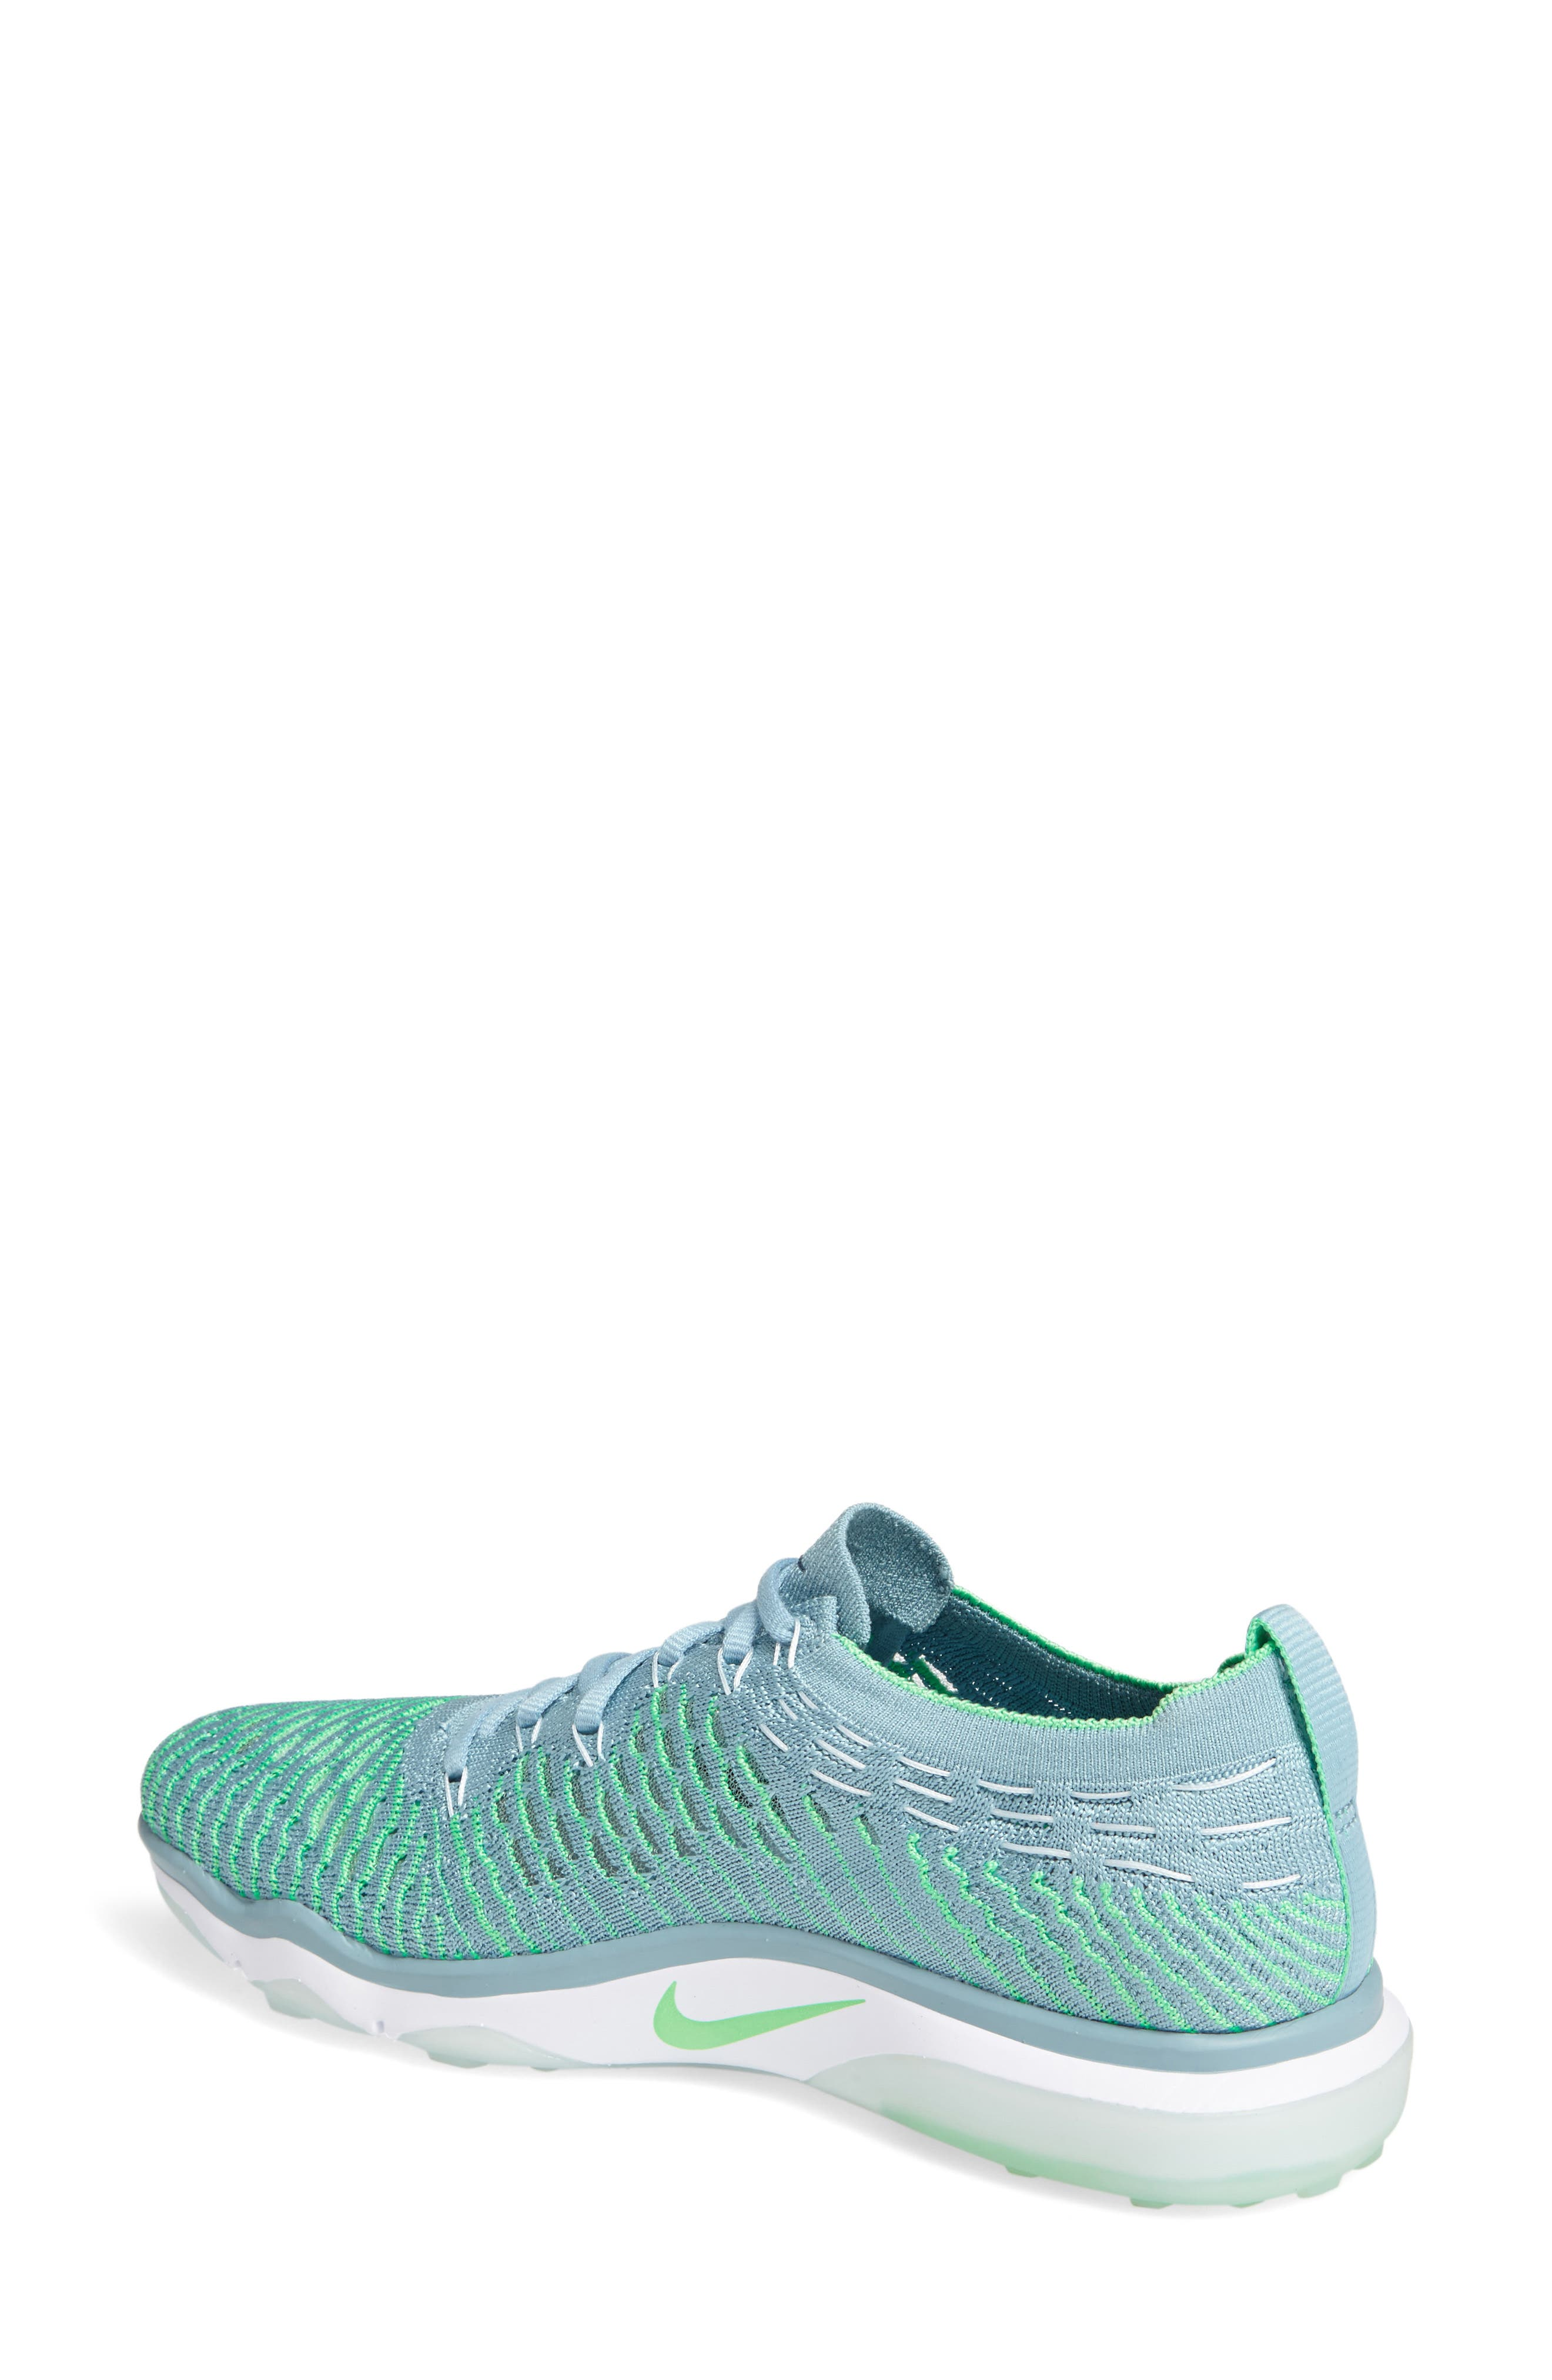 Air Zoom Fearless Flyknit Training Shoe,                             Alternate thumbnail 21, color,